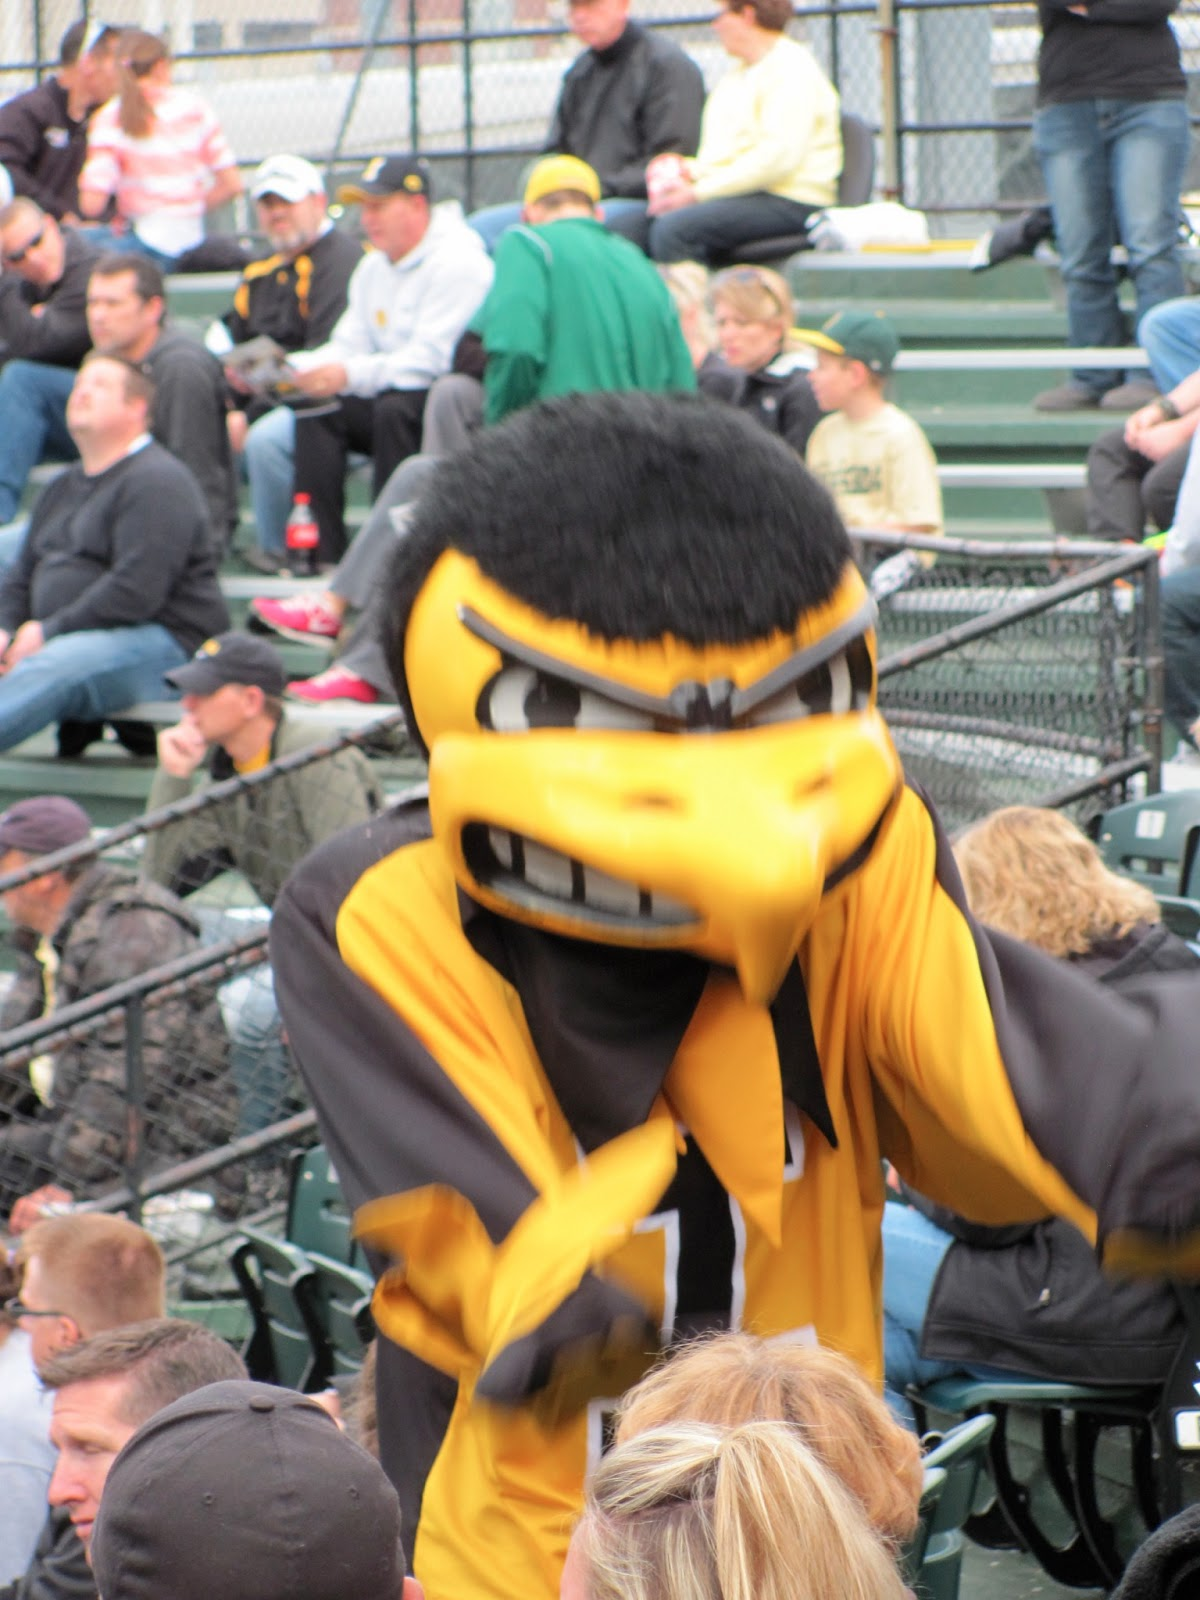 Iowa mascot Herky dances in the stands at the Iowa baseball game